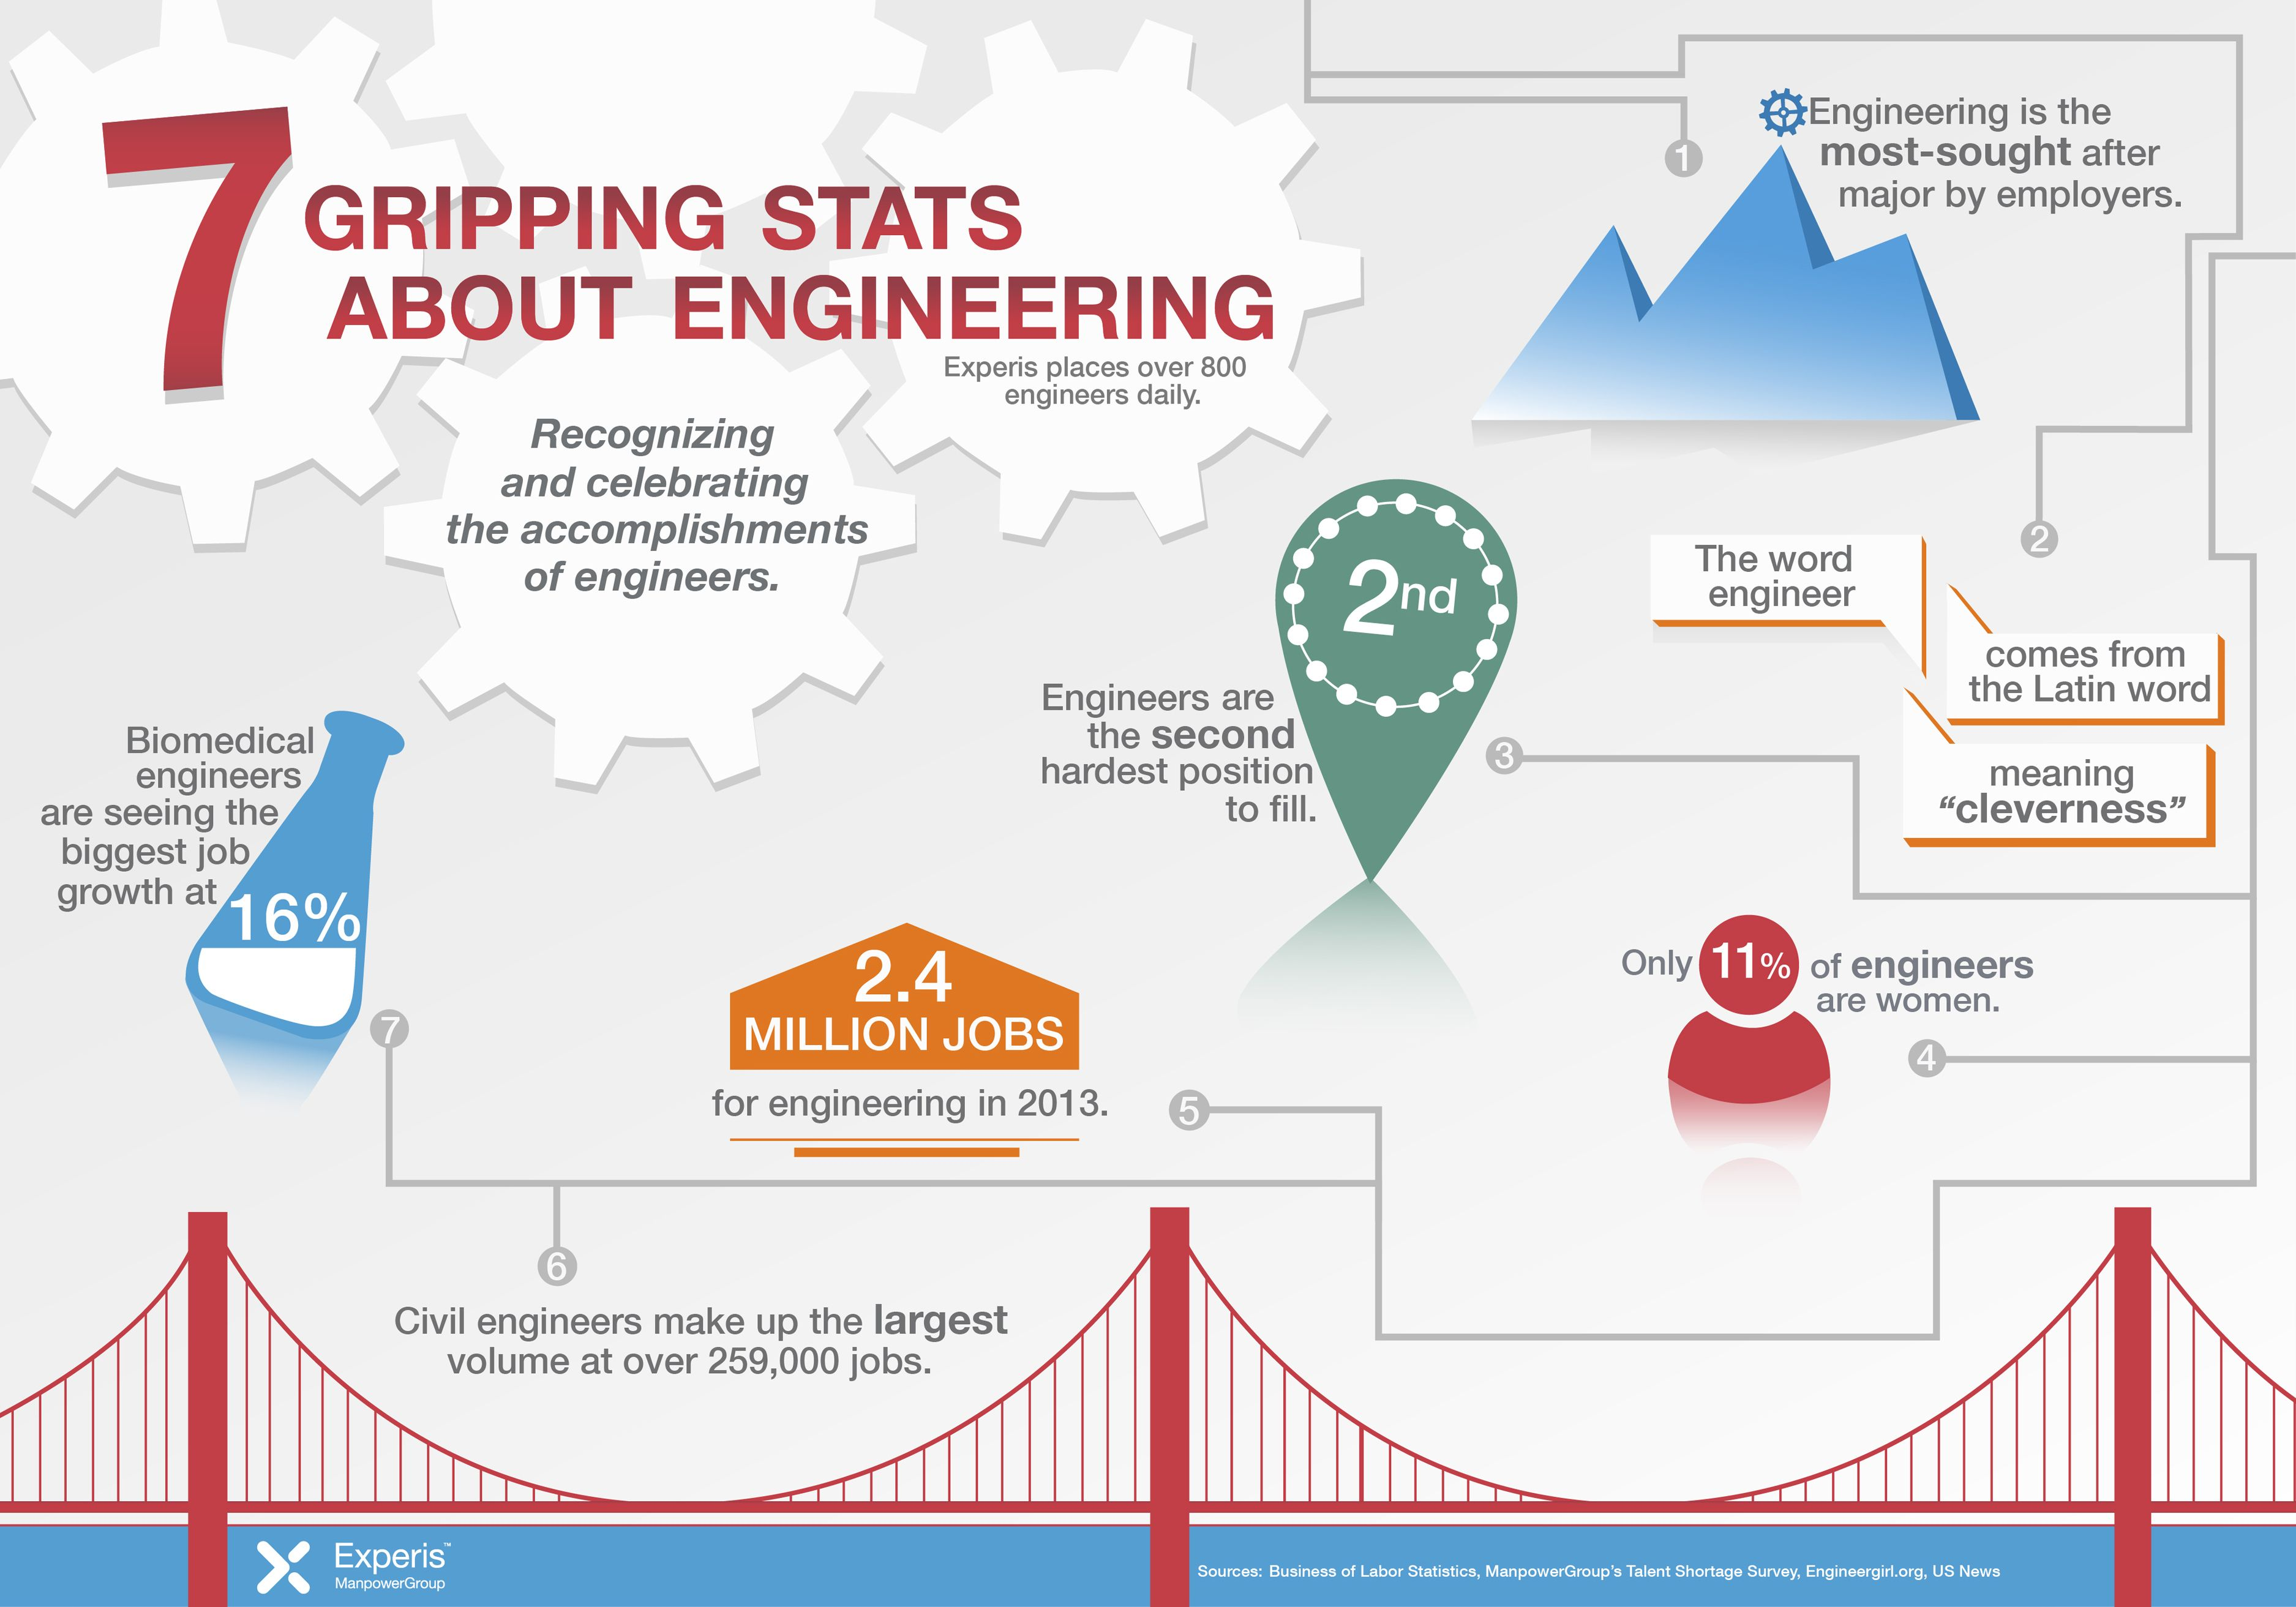 7 gripping facts about engineering engineers engineering 7 gripping facts about engineering engineers engineering careers